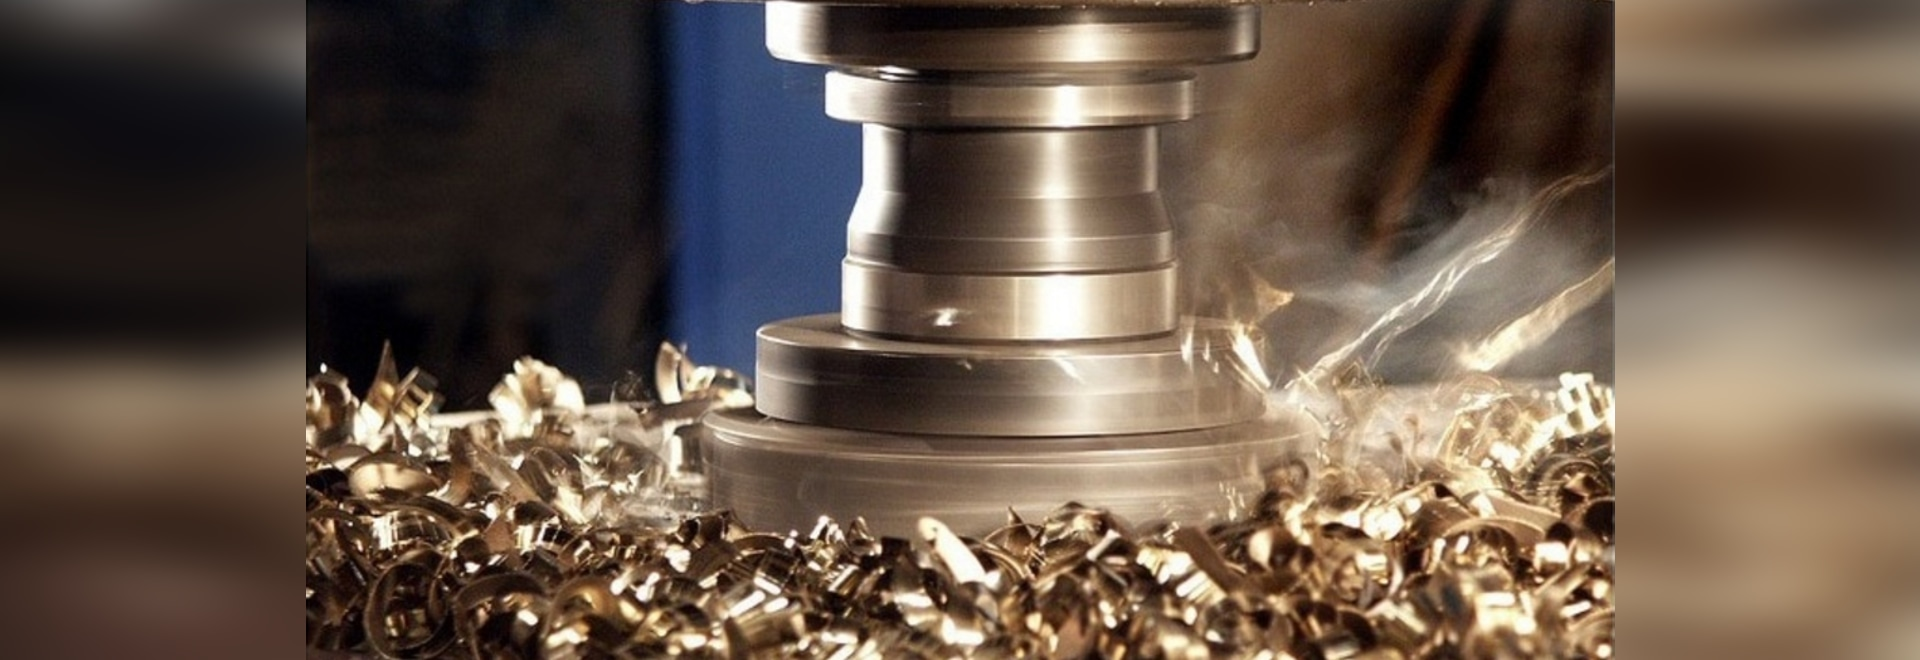 Machine Tool Applications have reduced noise with Xi-Plus Precision Ball Screws by Steinmeyer Inc.